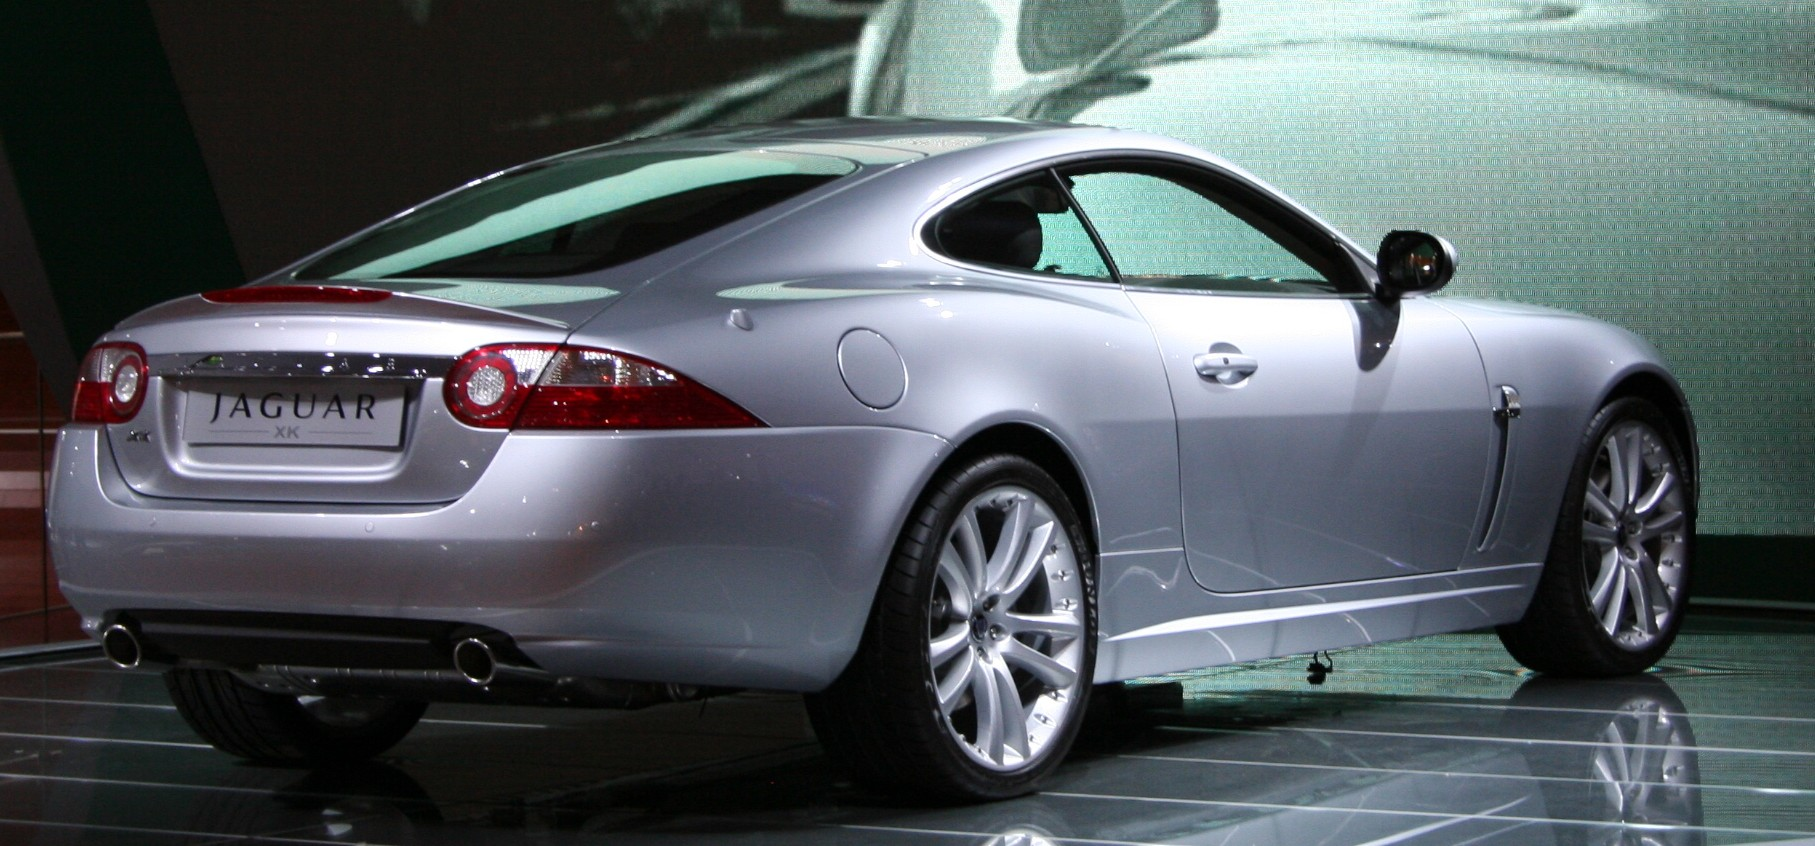 Jaguar XK photo 01